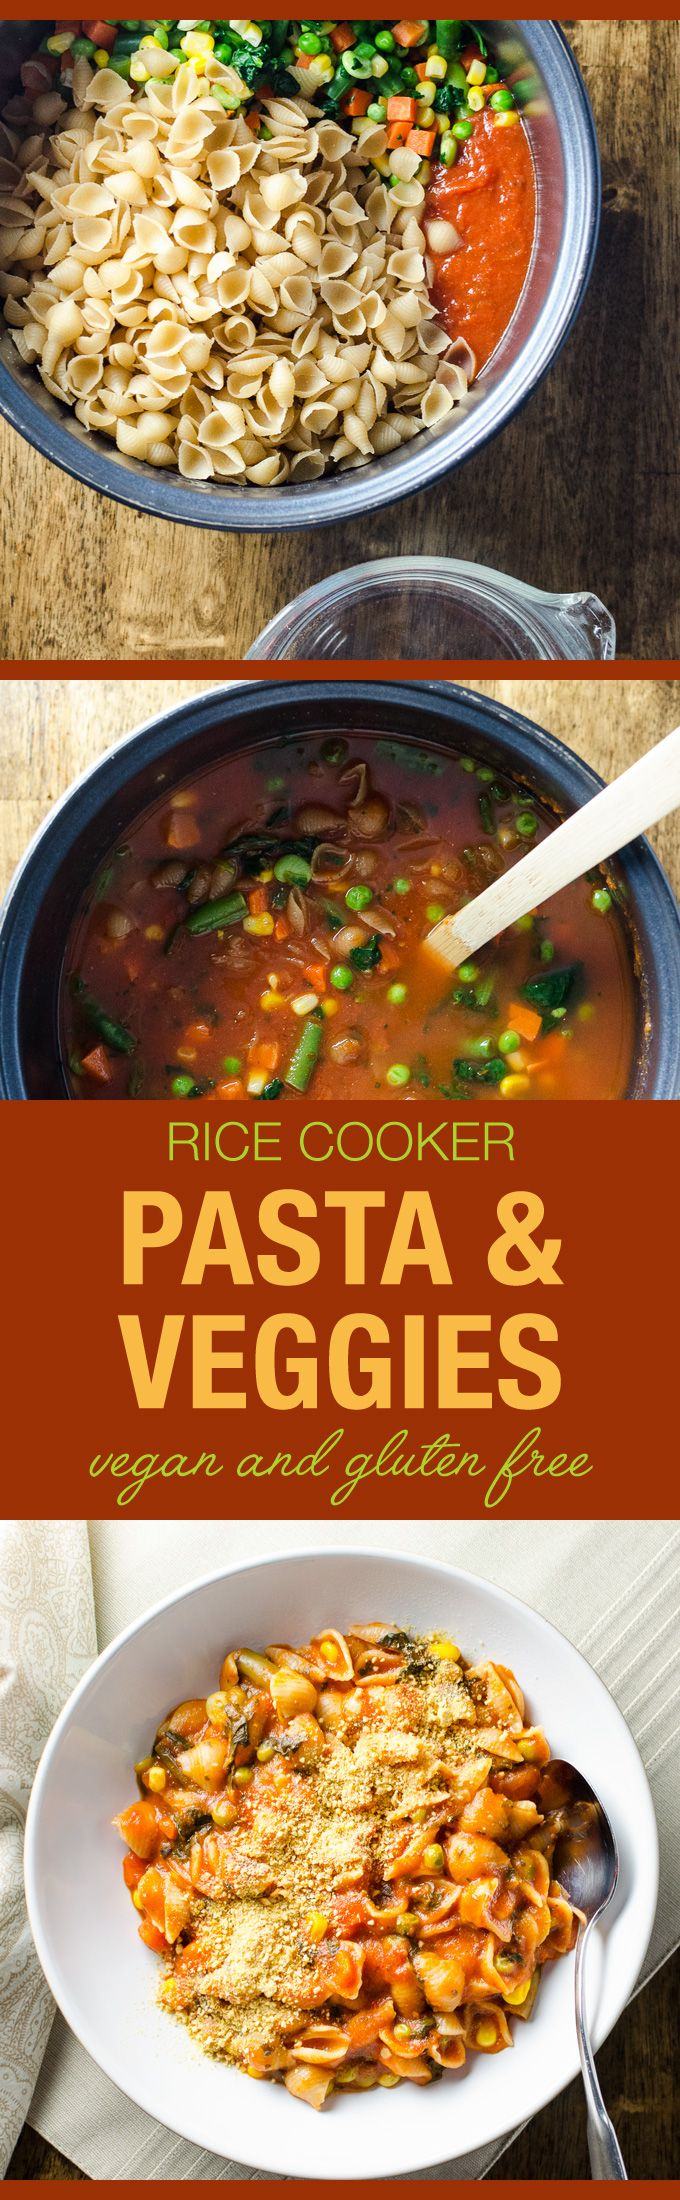 Rice Cooker Pasta with Veggies - an easy main meal with simple vegan and gluten free ingredients   VeggiePrimer.com